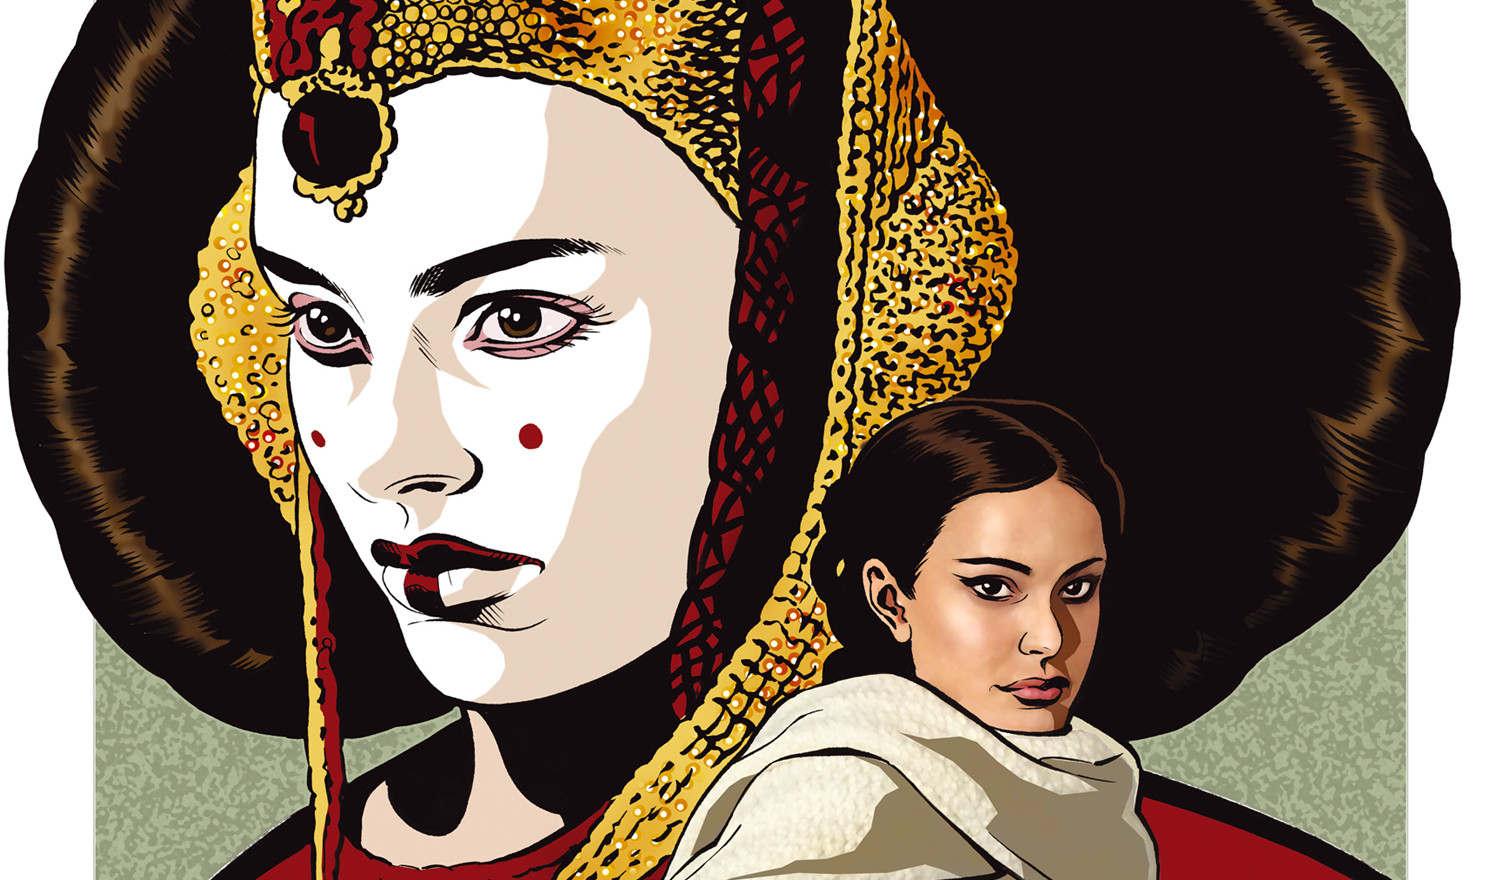 Padme/Queen Amidala, Star Wars: The Phantom Menace